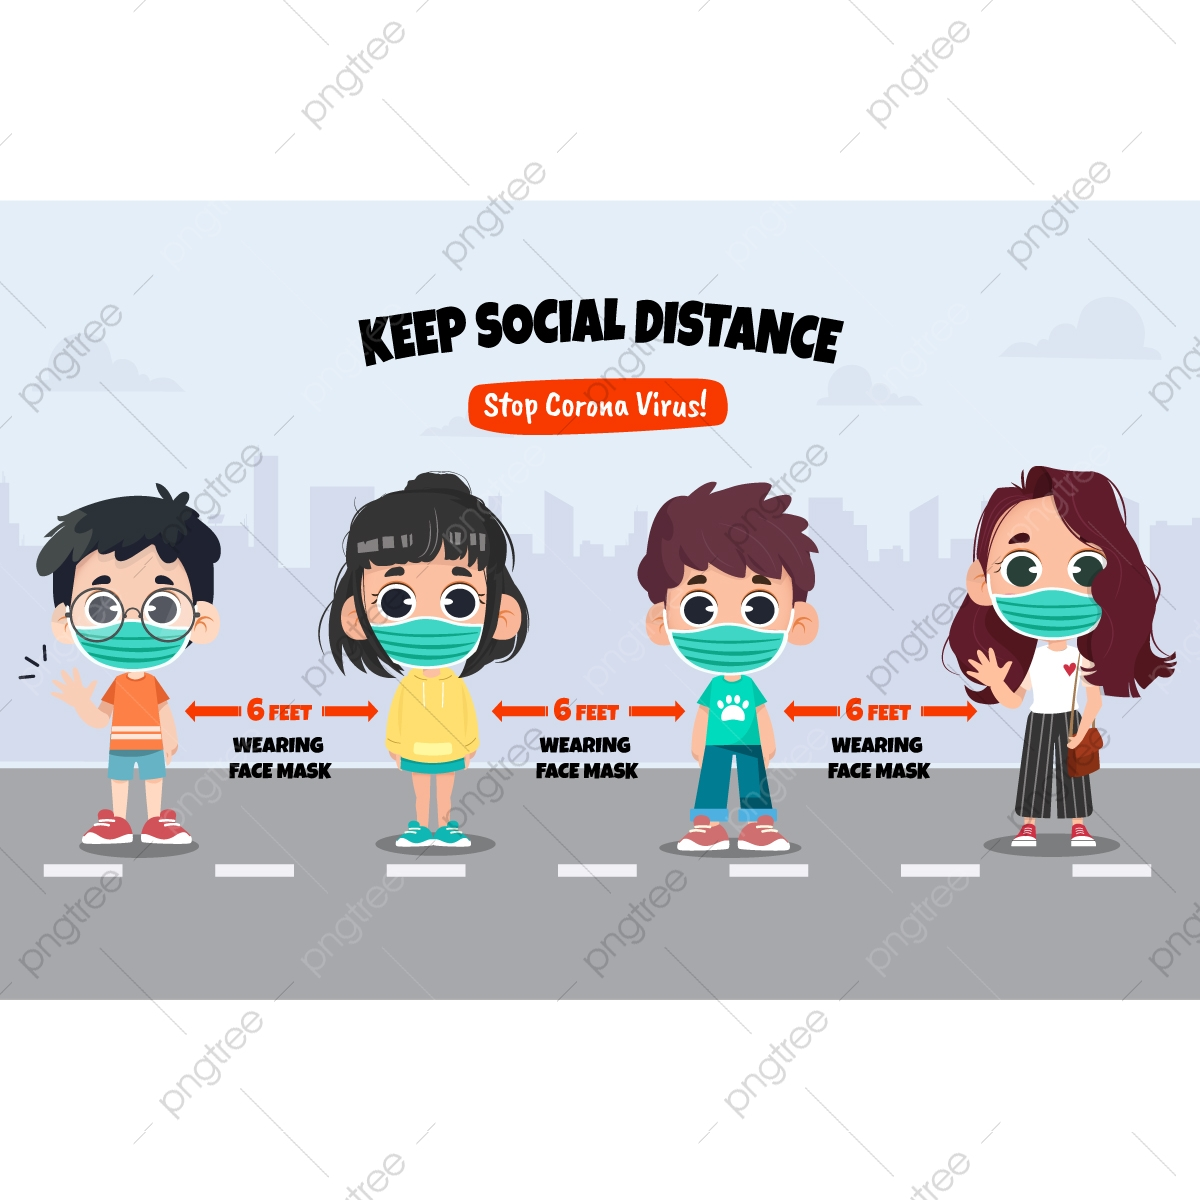 Social Distancing Protection Concept Social Clipart People Kids Png And Vector With Transparent Background For Free Download